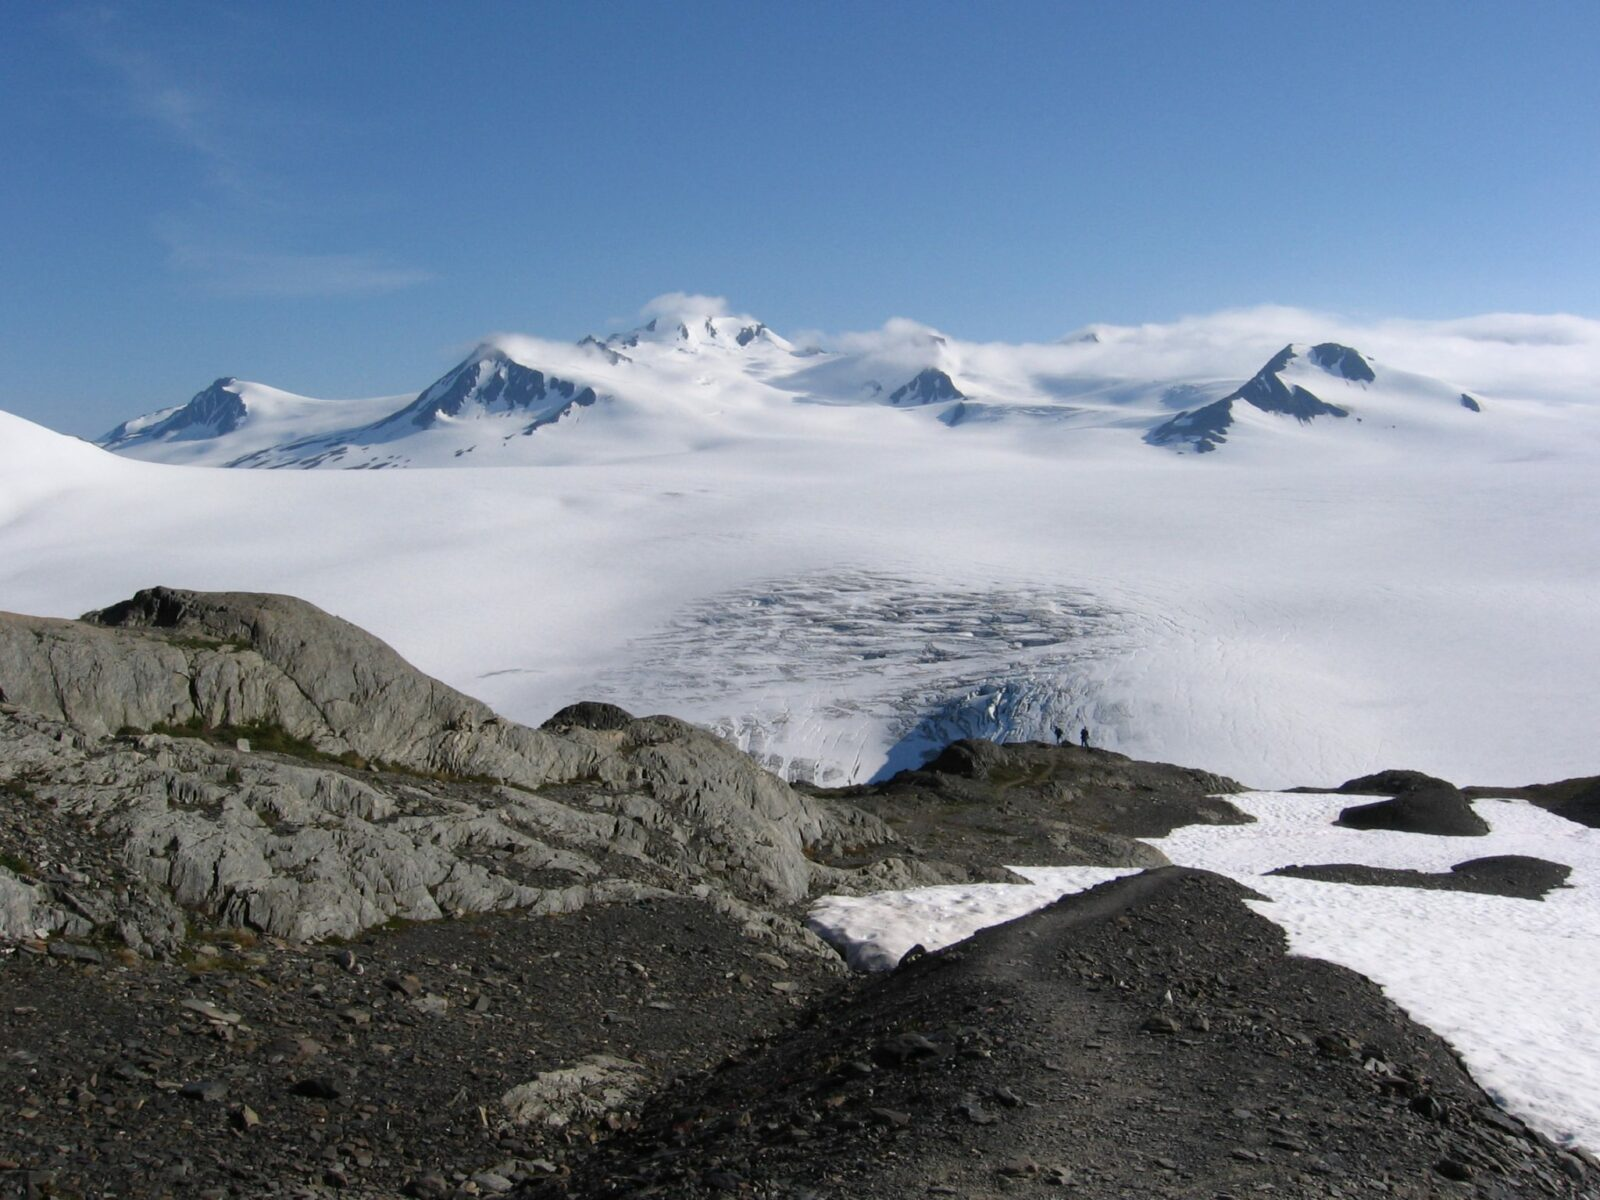 A highlight of Alaska national parks is the Harding Icefield hike. Two hikers in the distance near rocks and a snow field. A glacier in the distance and mountains partially covered in clouds.